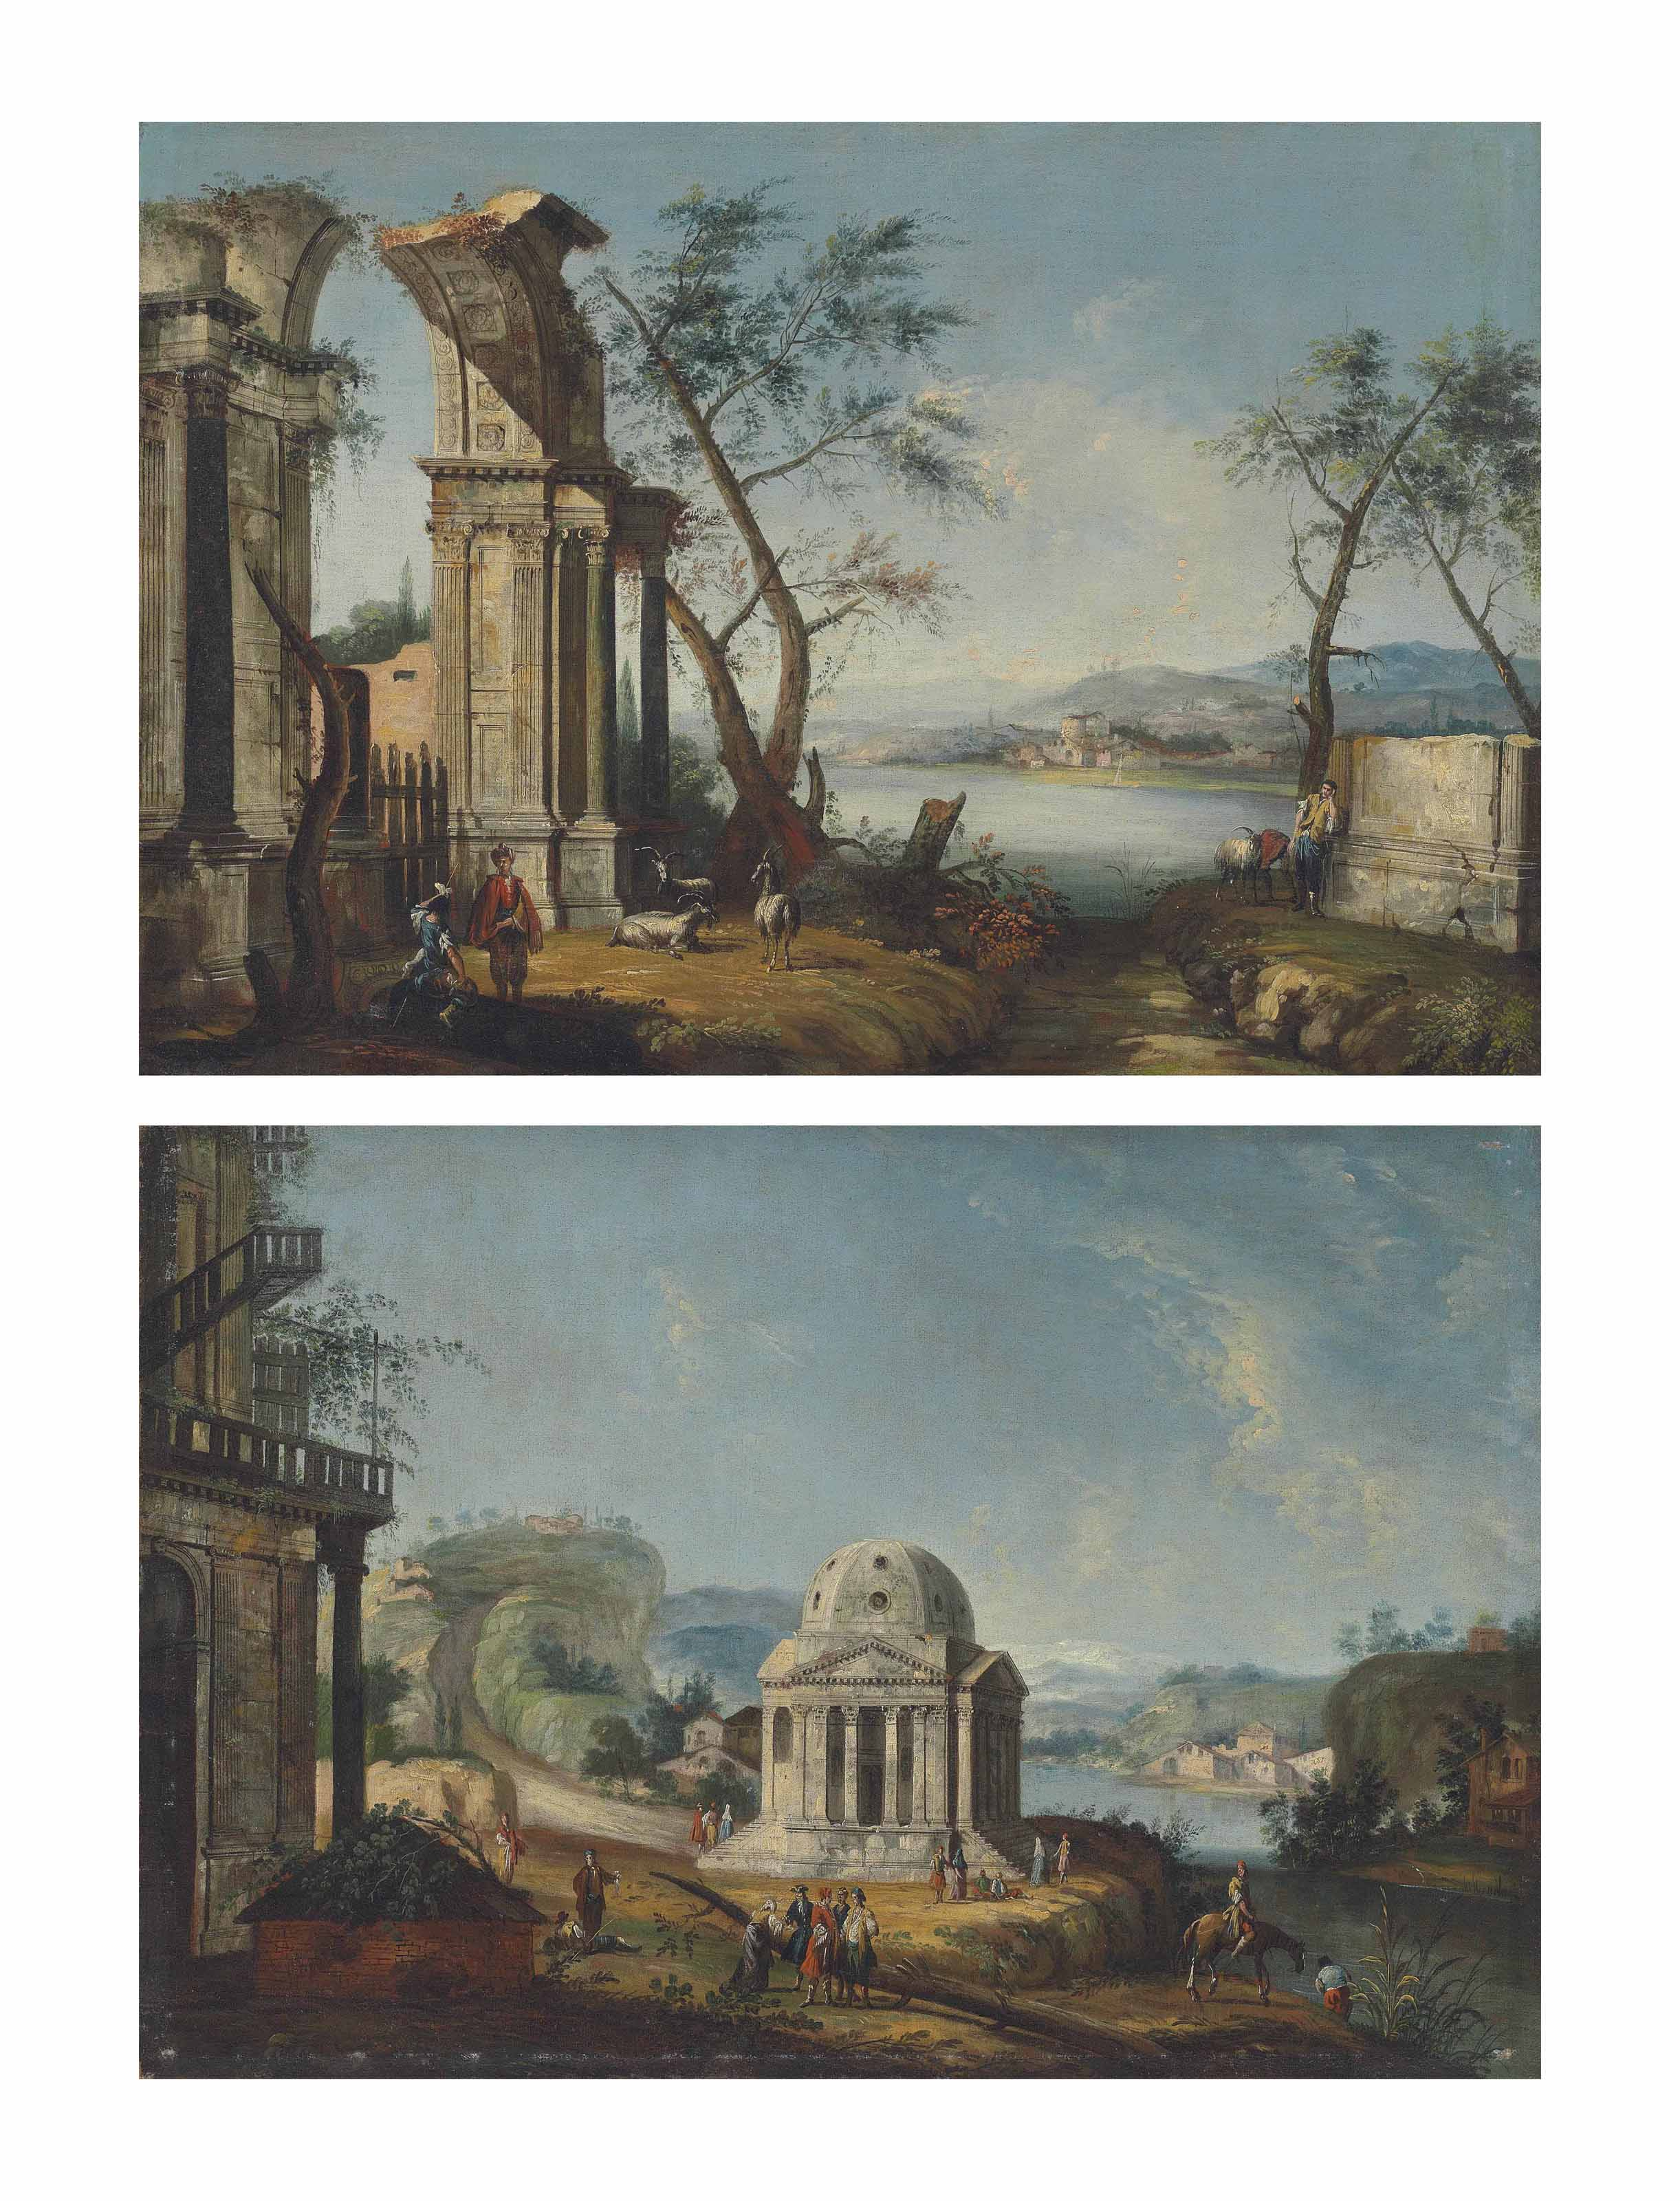 A capriccio of classical ruins with travellers and goats by a river, a town beyond; and An architectural capriccio with a temple and elegantly dressed figures by a river